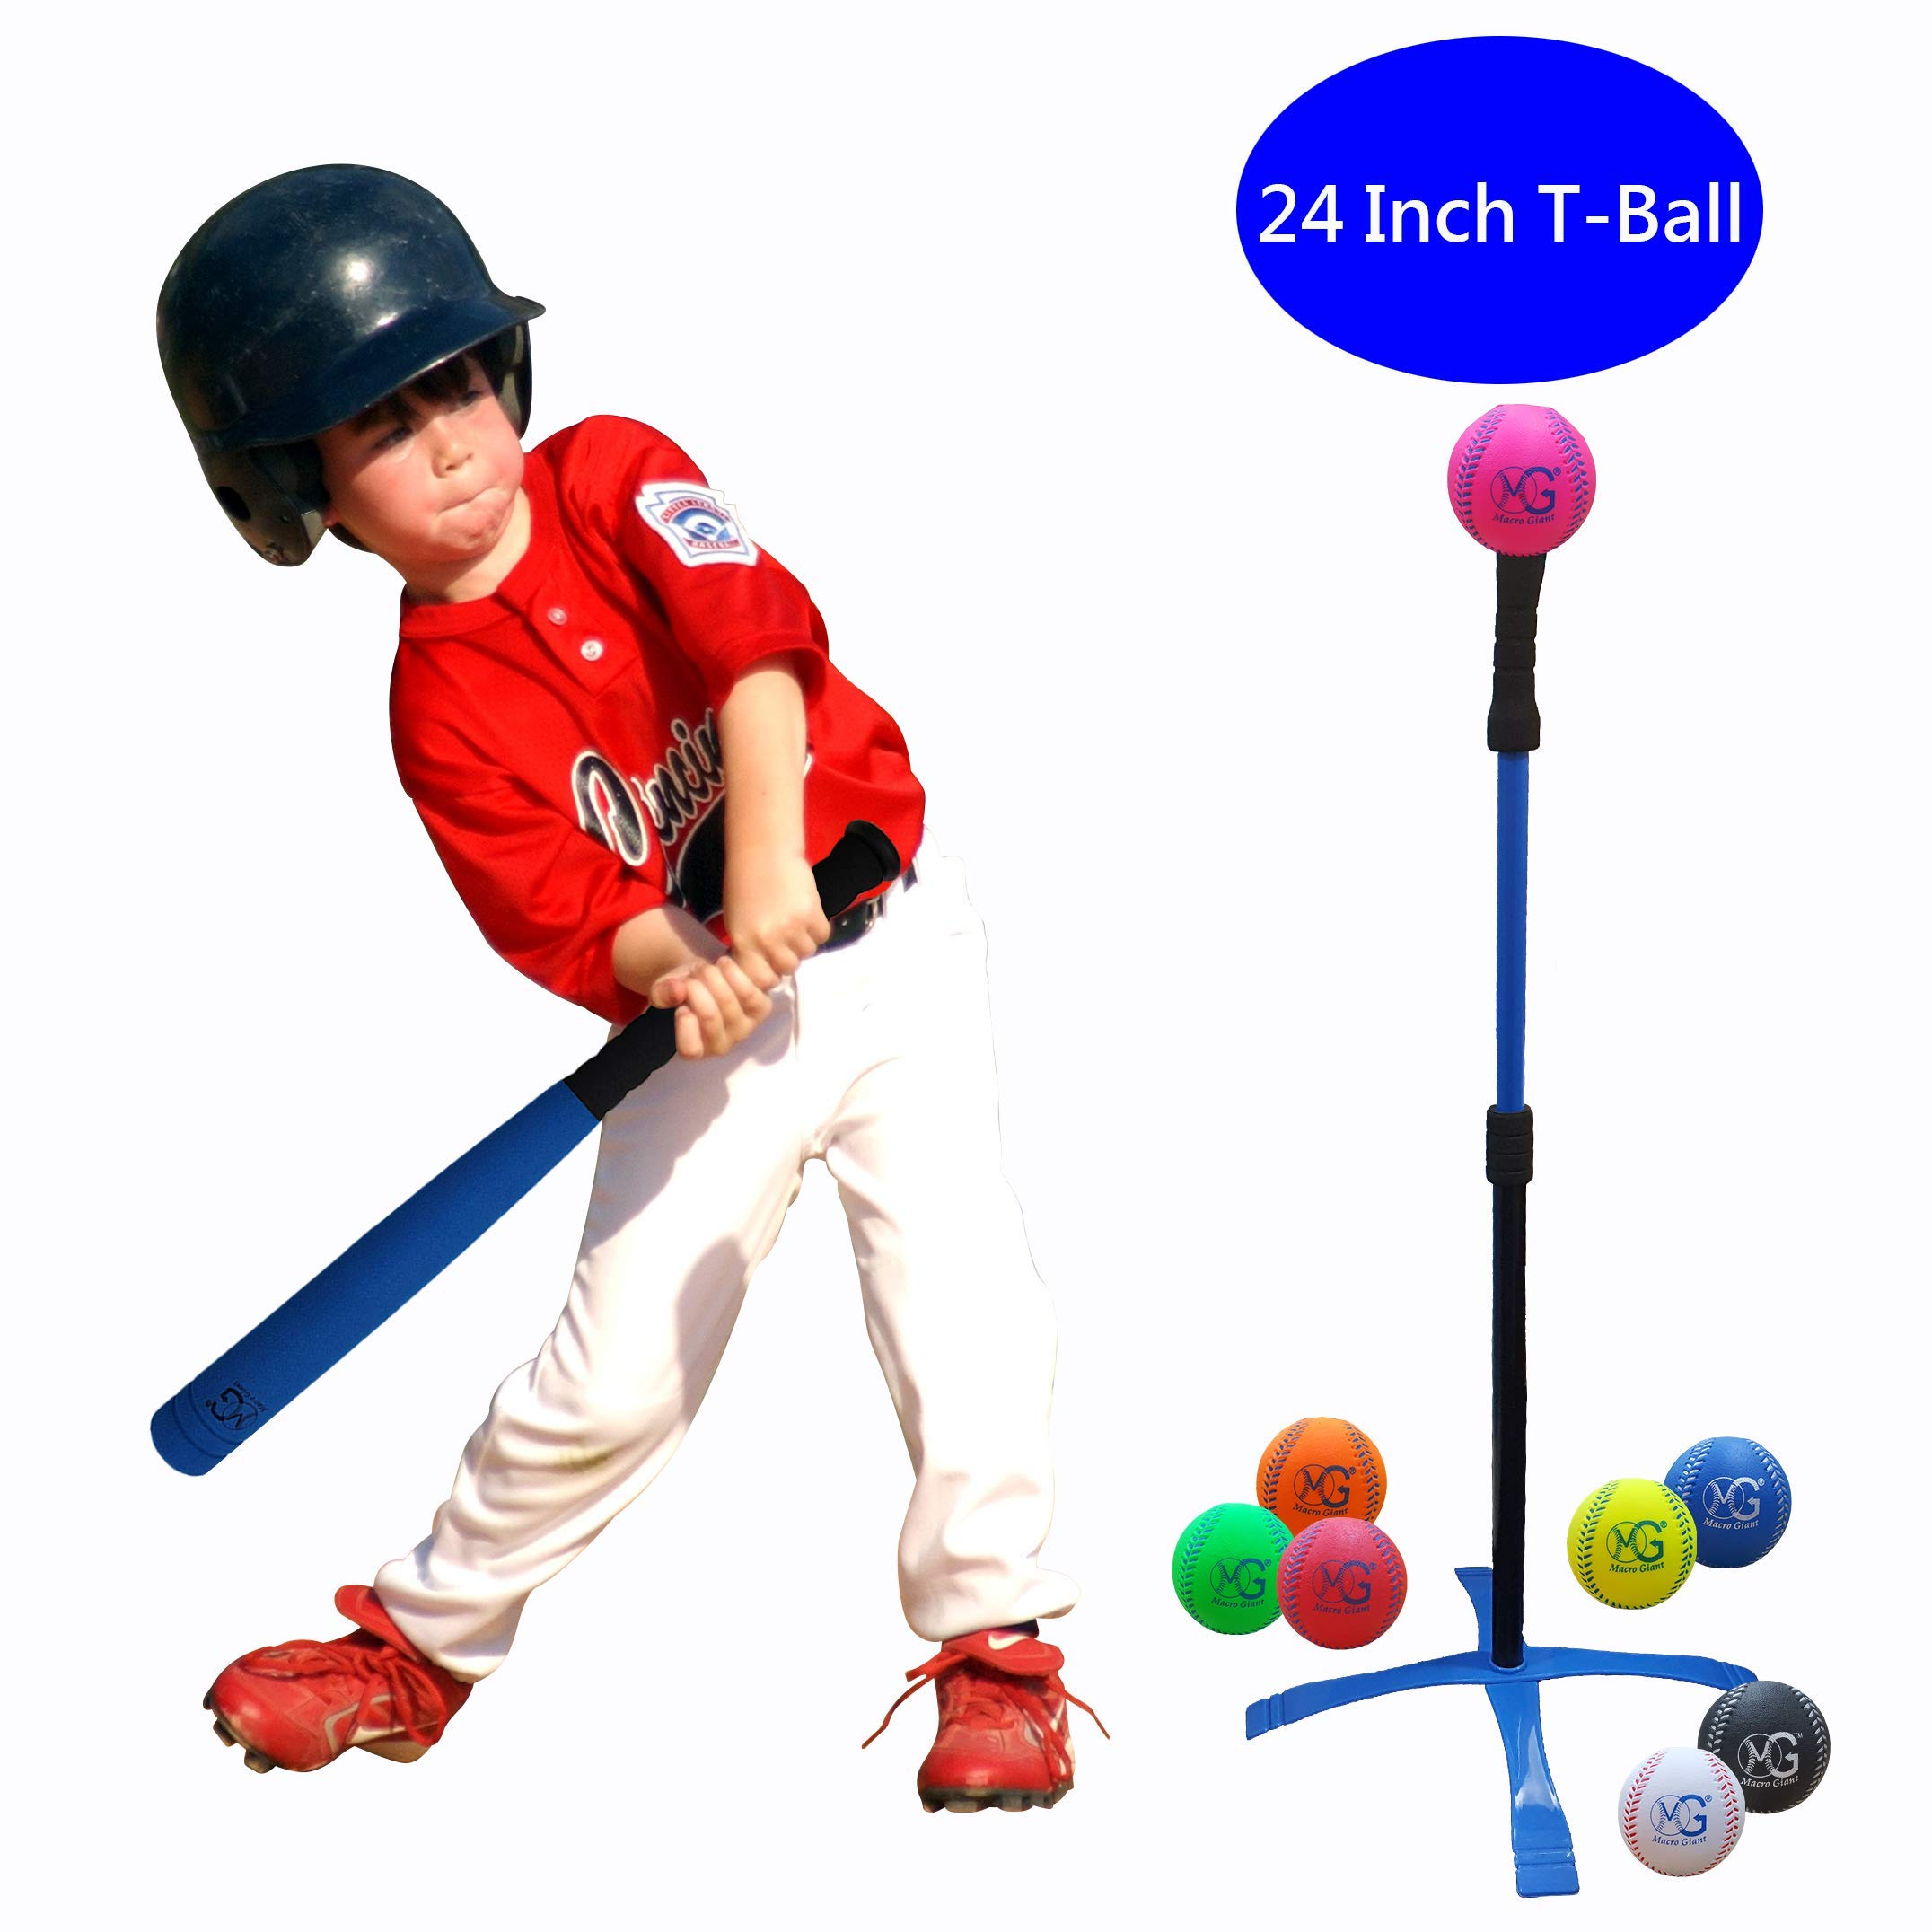 Macro Giant 24 Inch Safe T Ball, Tee Ball, T-Ball, Foam Bat and Baseball Set for Kids, 1 Blue/Red Bat, 8 Baseballs, Assorted Color, Training Practice, Youth Batting Trainer, School Playground, Kid Toy by MG MACRO GIANT